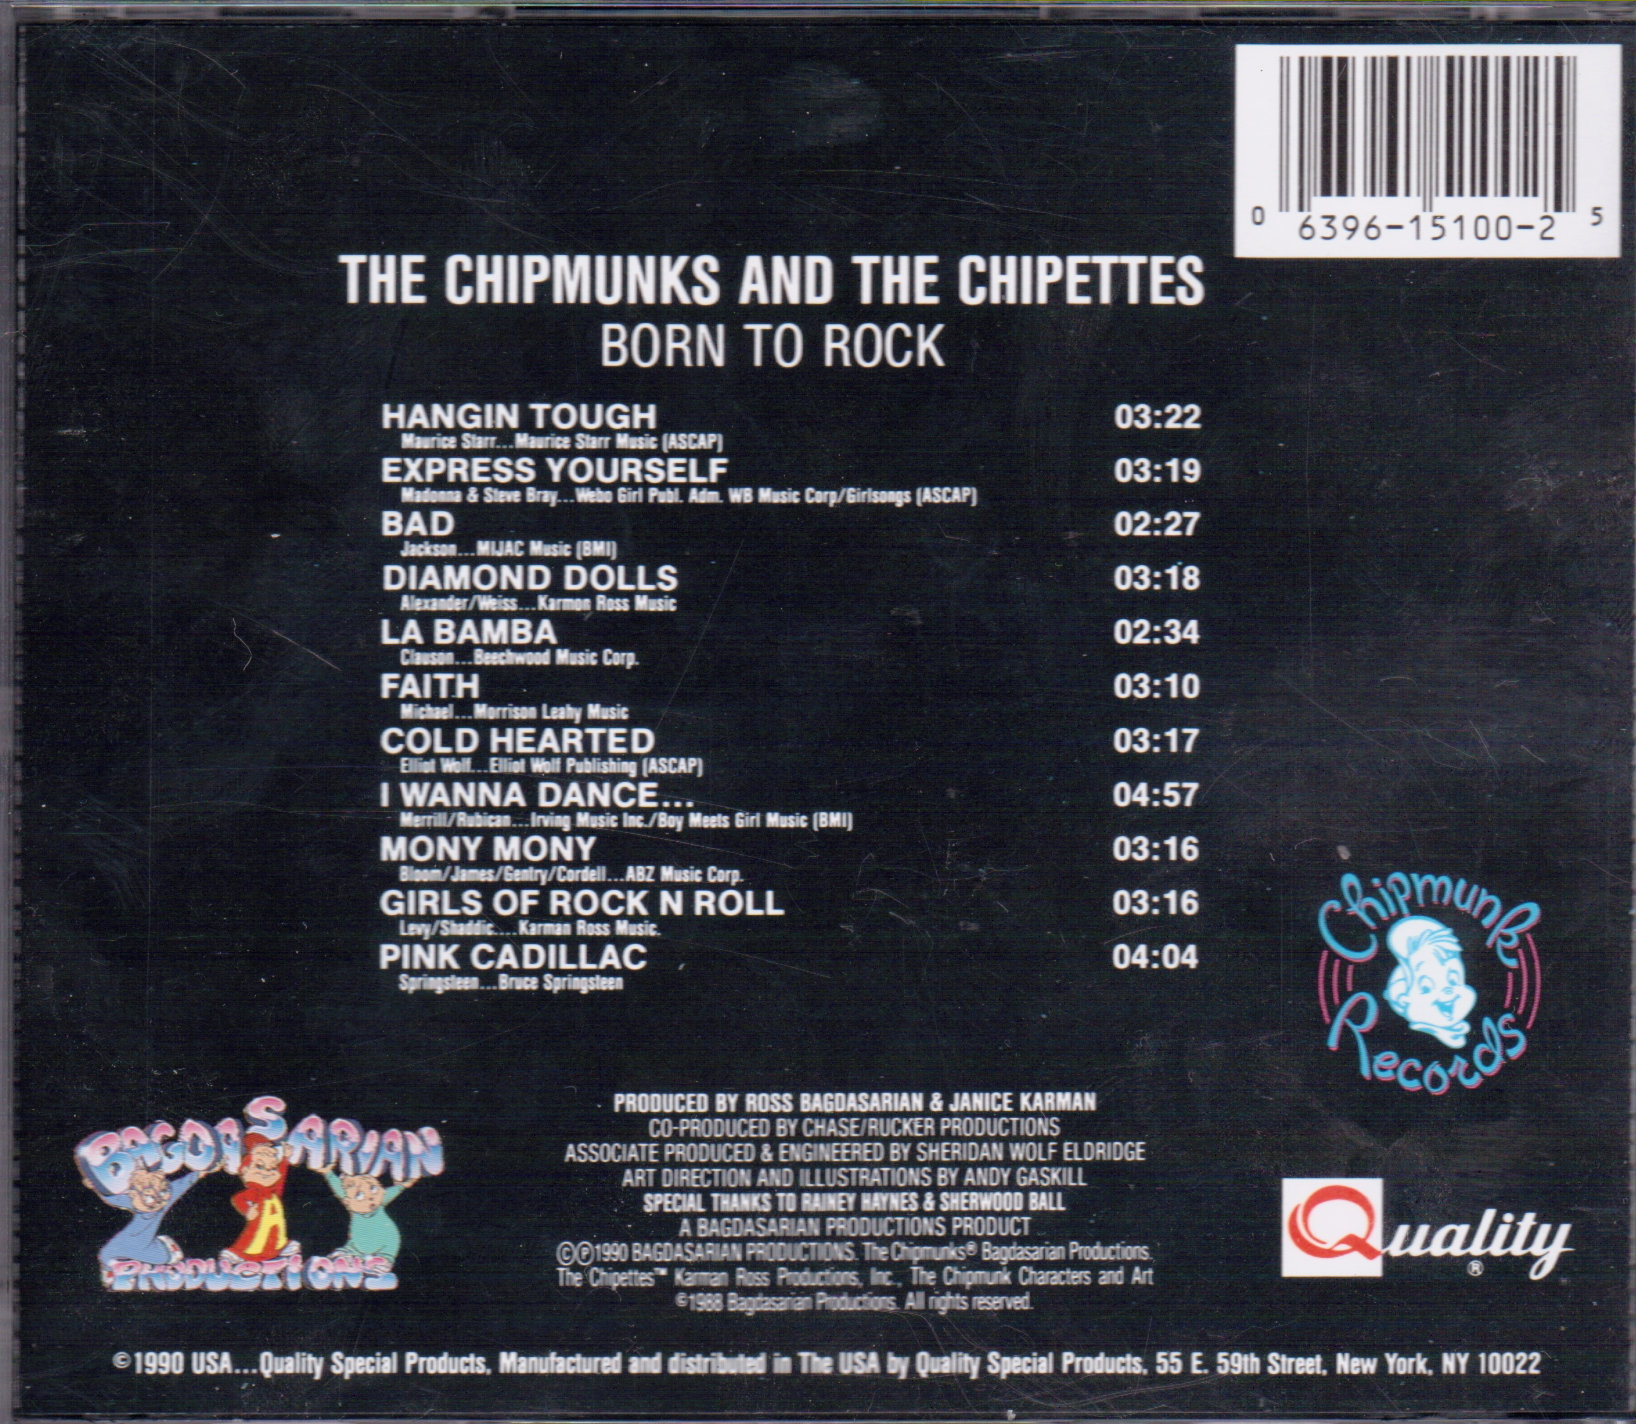 image born to rock cd back cover jpeg alvin and the chipmunks